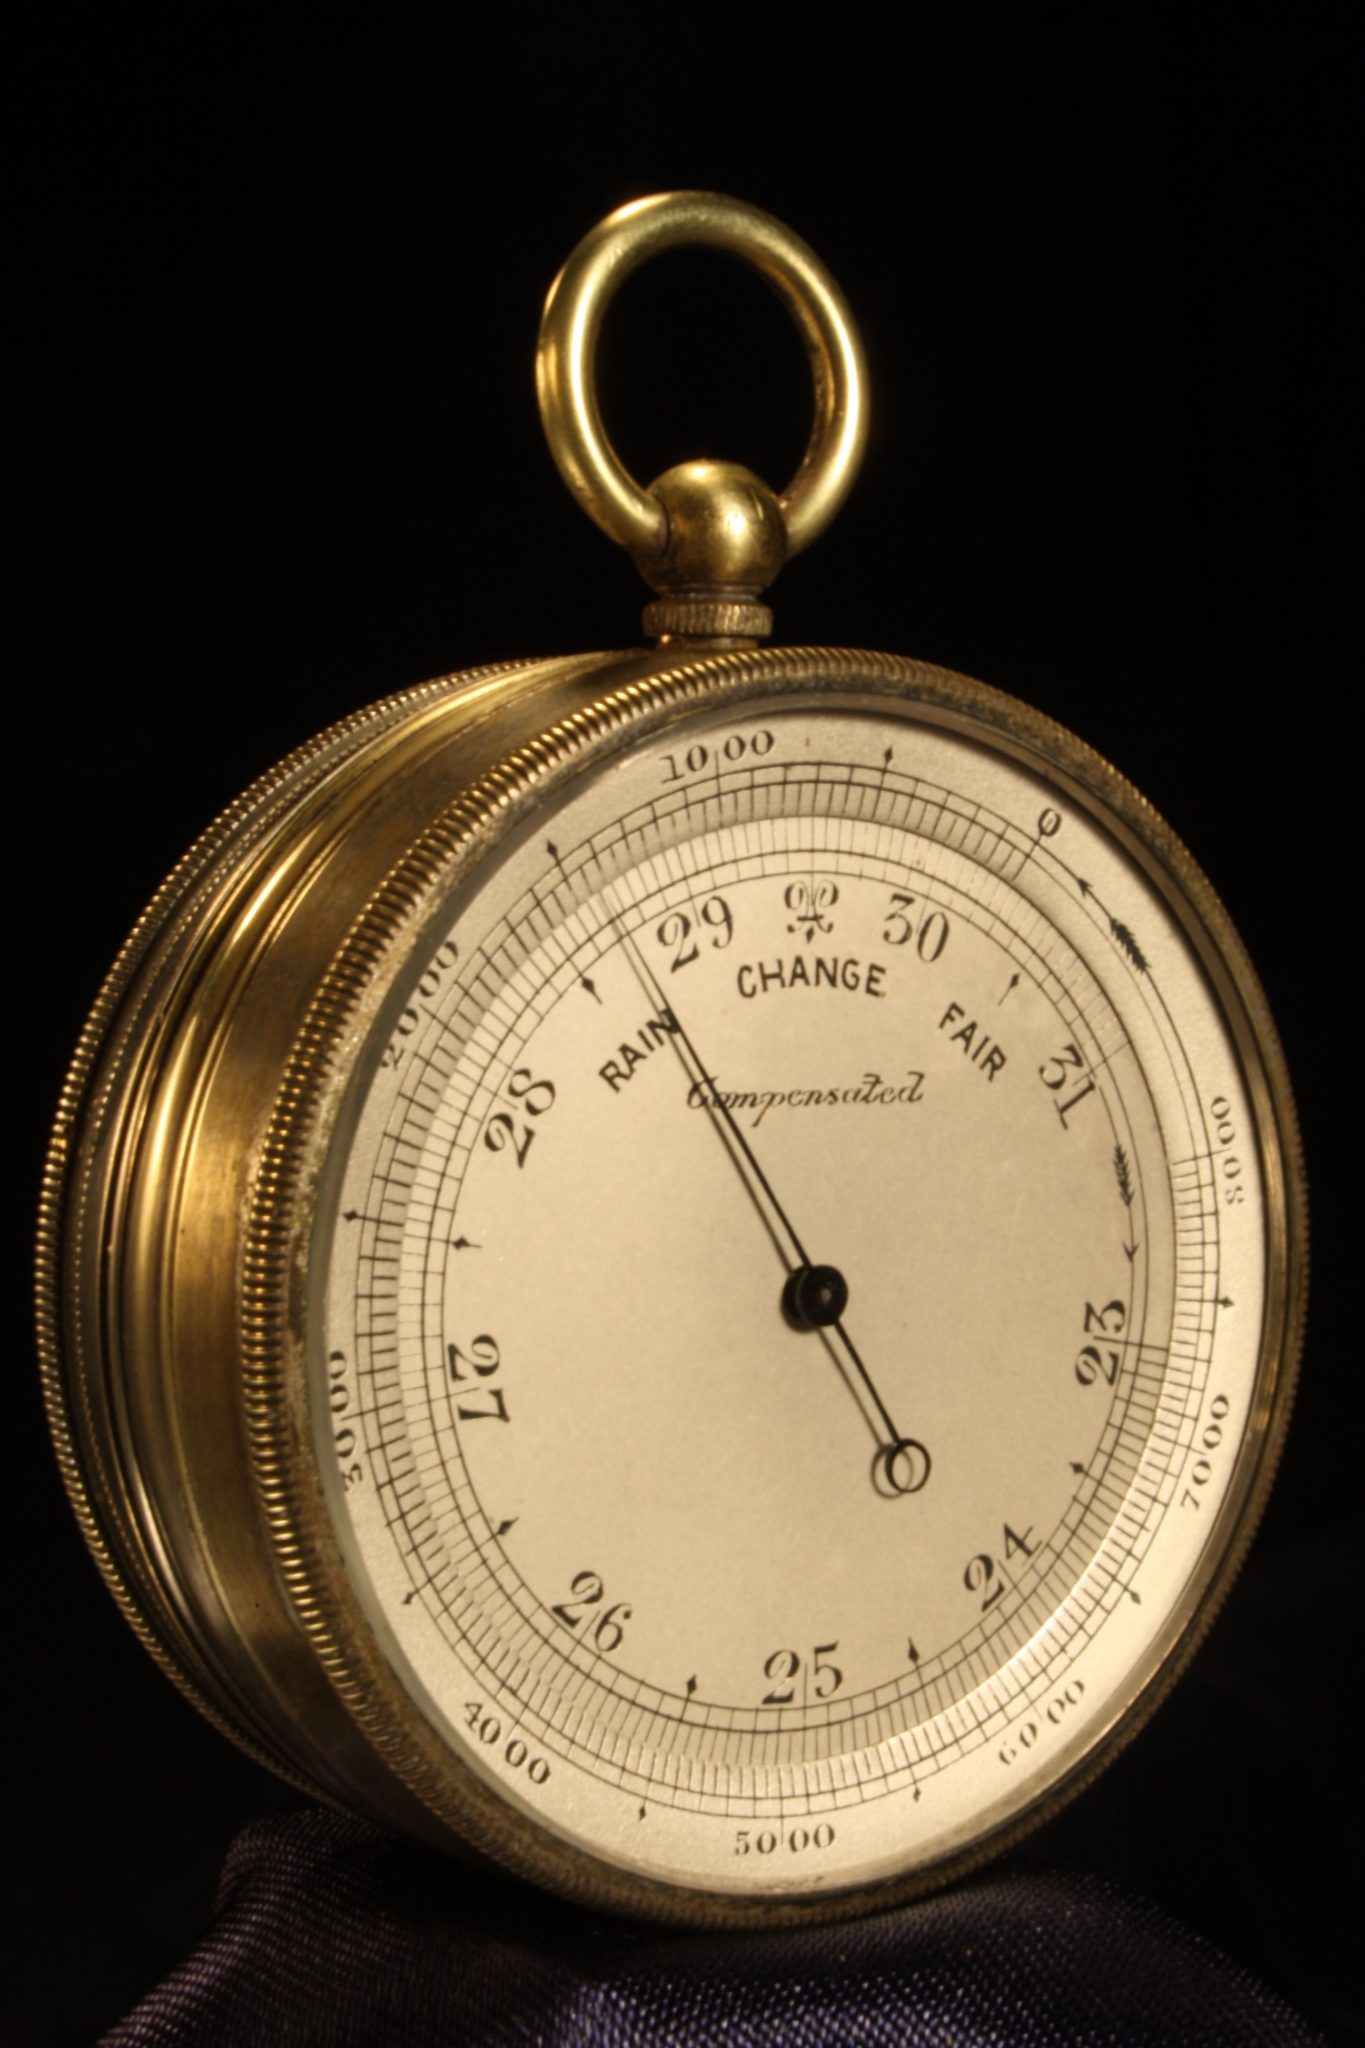 Image of Nickel Brass Pocket Barometer Compendium c1870